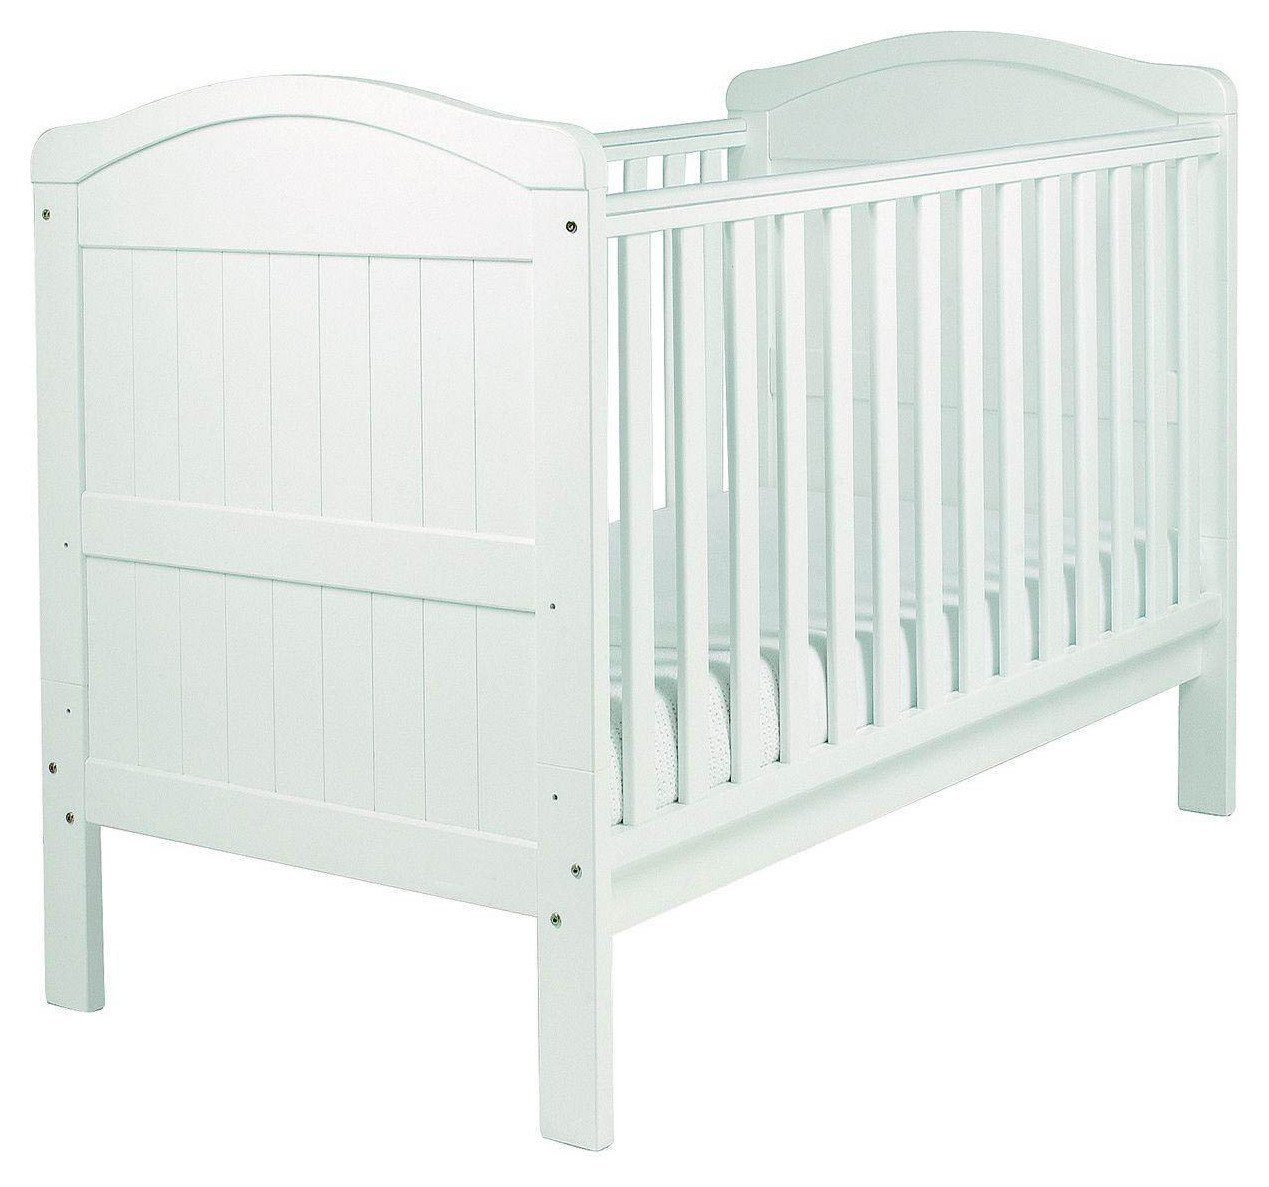 Image of East Coast - Nursery Country - Cot Bed - White